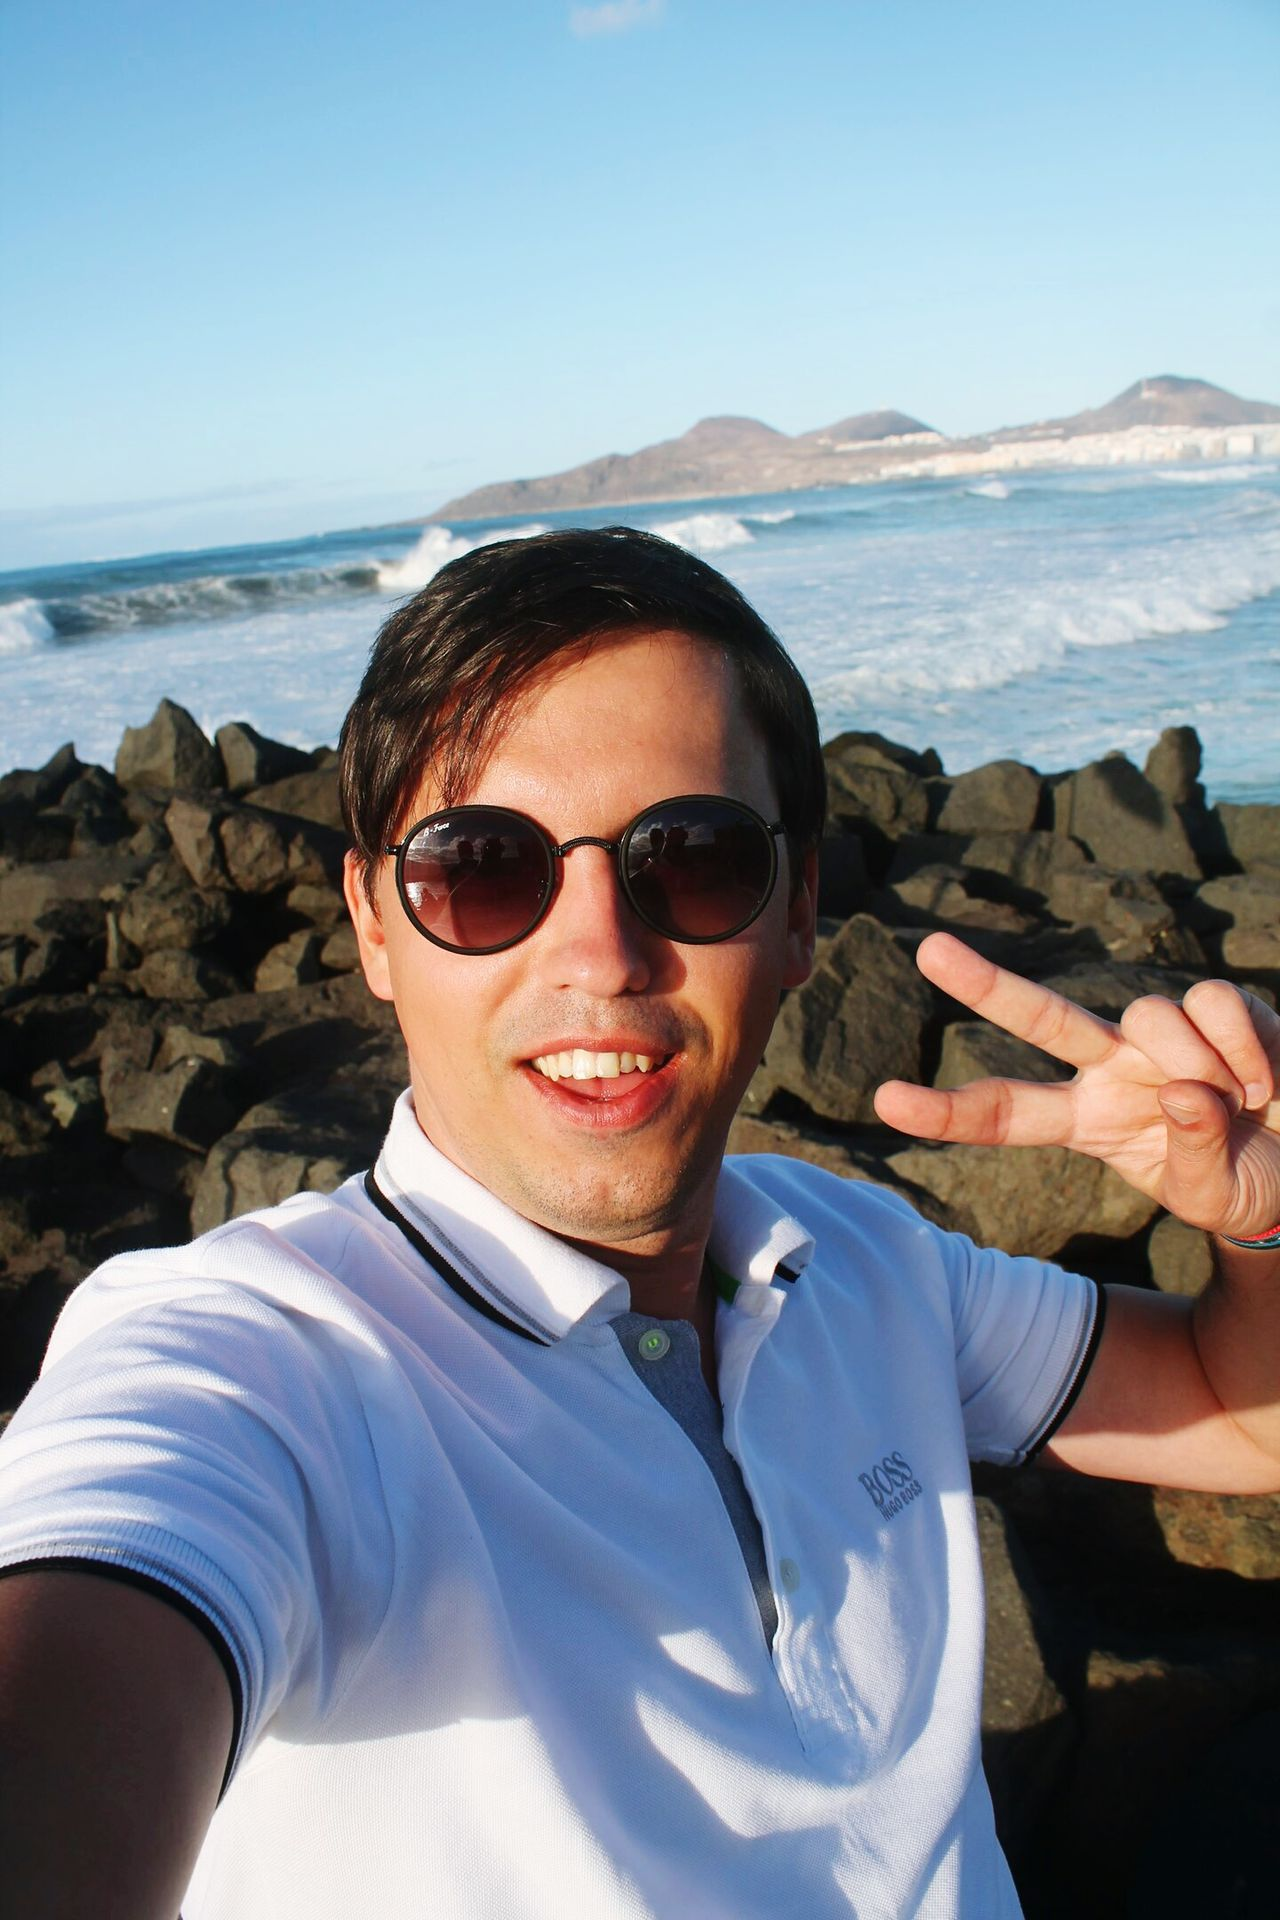 Las Palmas De Gran Canaria Las Palmas Gran Canaria Sea Water Beautiful Day Cool Boy Glass Black Glasses AirBnB Vacation Time Vacation Vacations 2017 January 2017 January Beach Sunglasses Portrait Selfie One Person One Man Only Looking At Camera Men People First Eyeem Photo